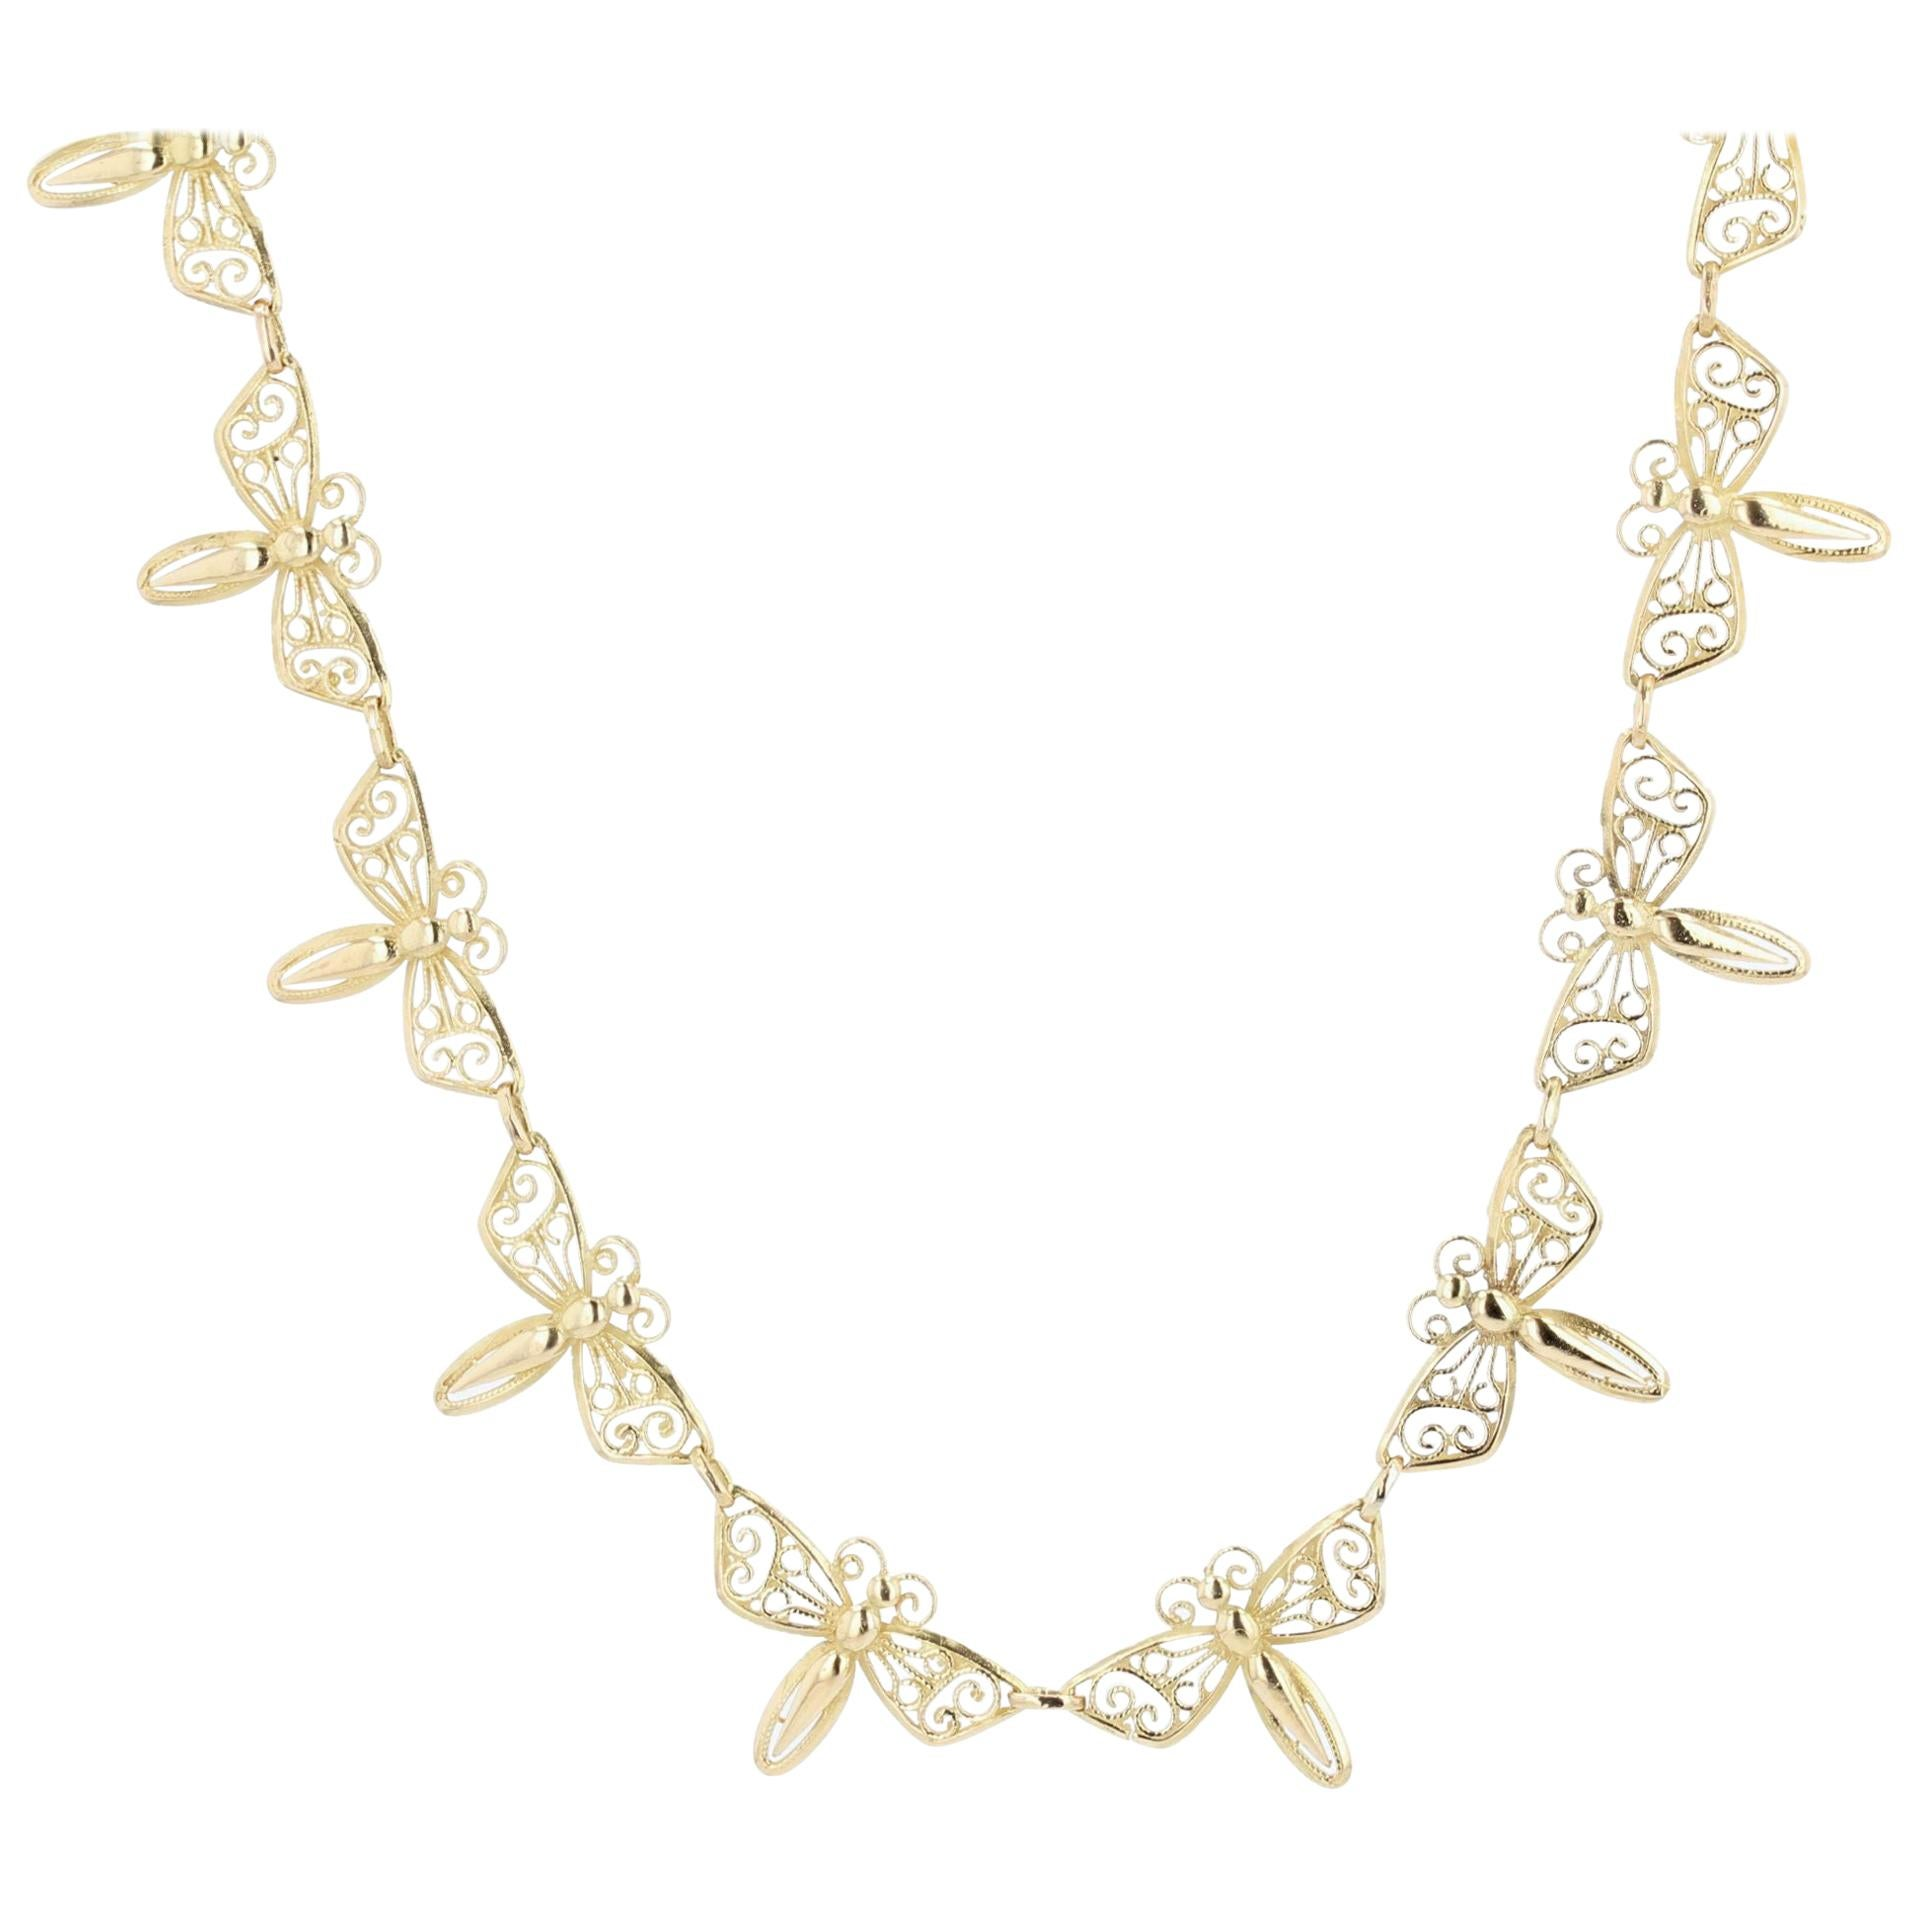 French 1900s 18 Karat Yellow Gold Butterflies Necklace